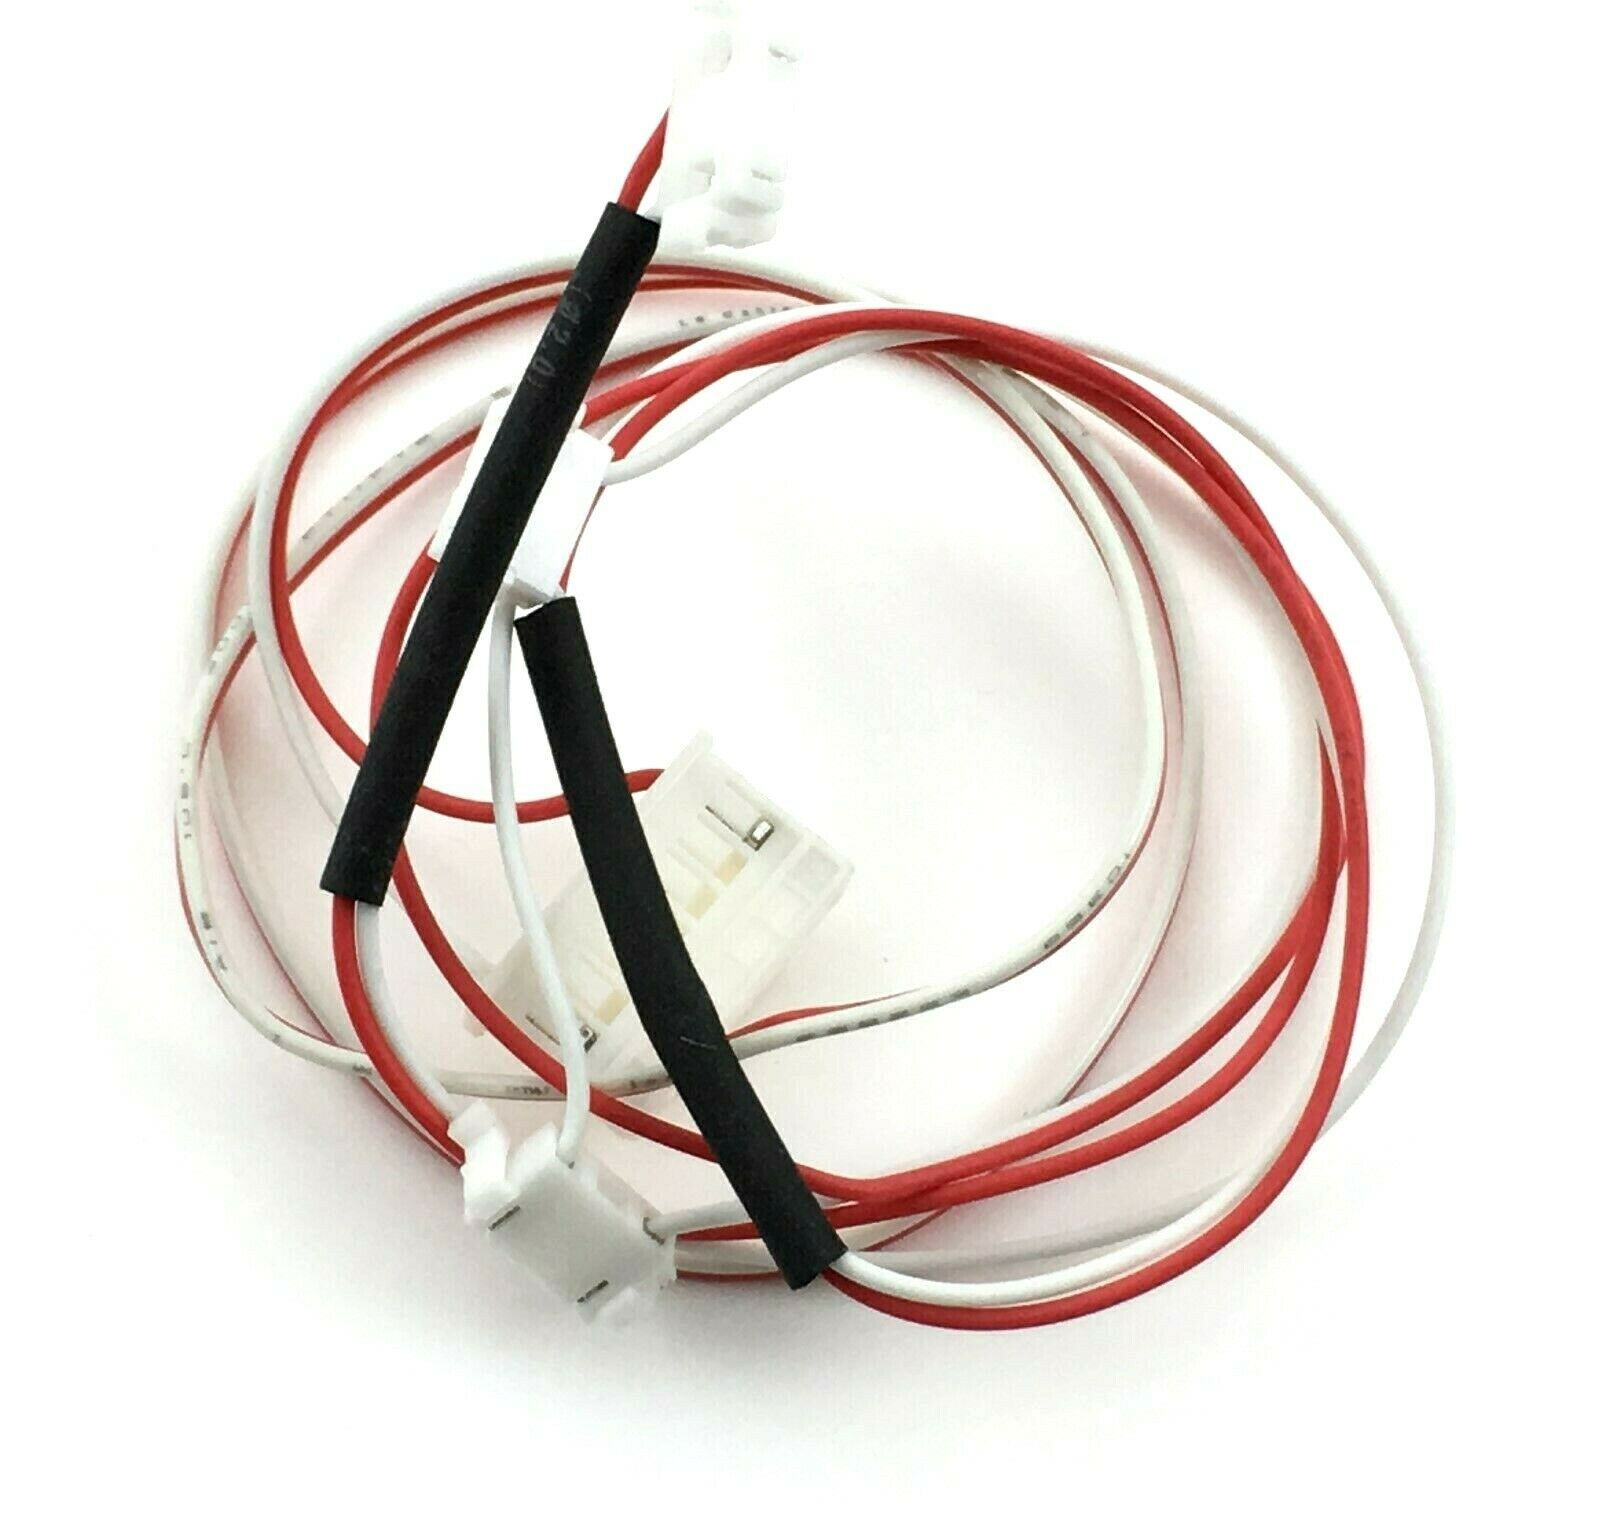 LG 43UJ6300 or 43UJ6300-UA Cable Wire (Power Supply Board to LED Backlights) - $14.84